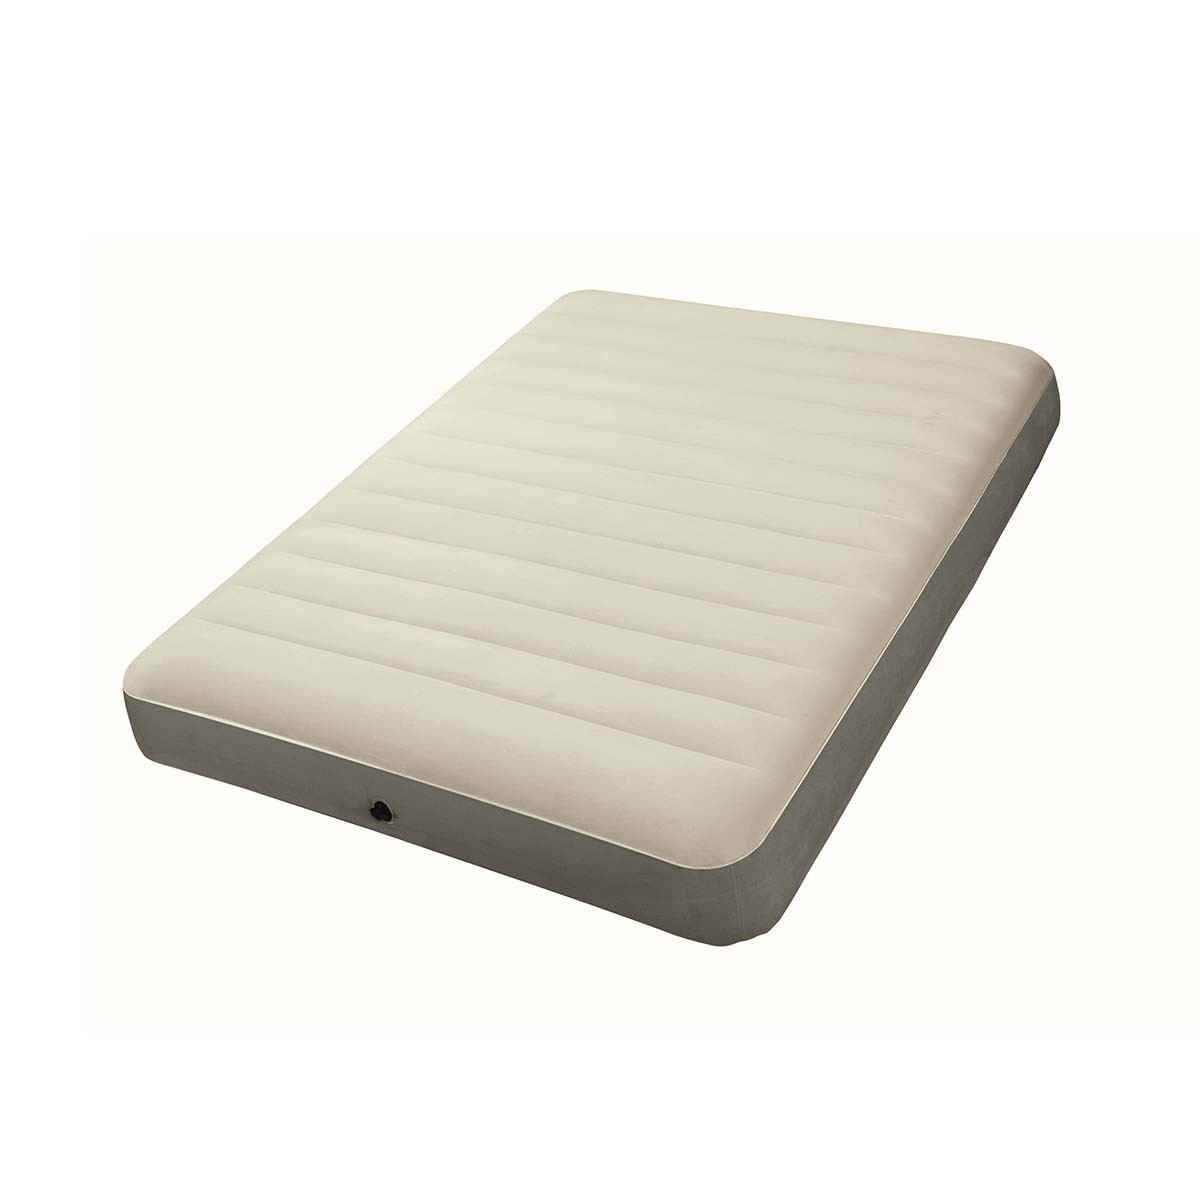 matelas gonflable fiber tech 2 places les douces nuits. Black Bedroom Furniture Sets. Home Design Ideas